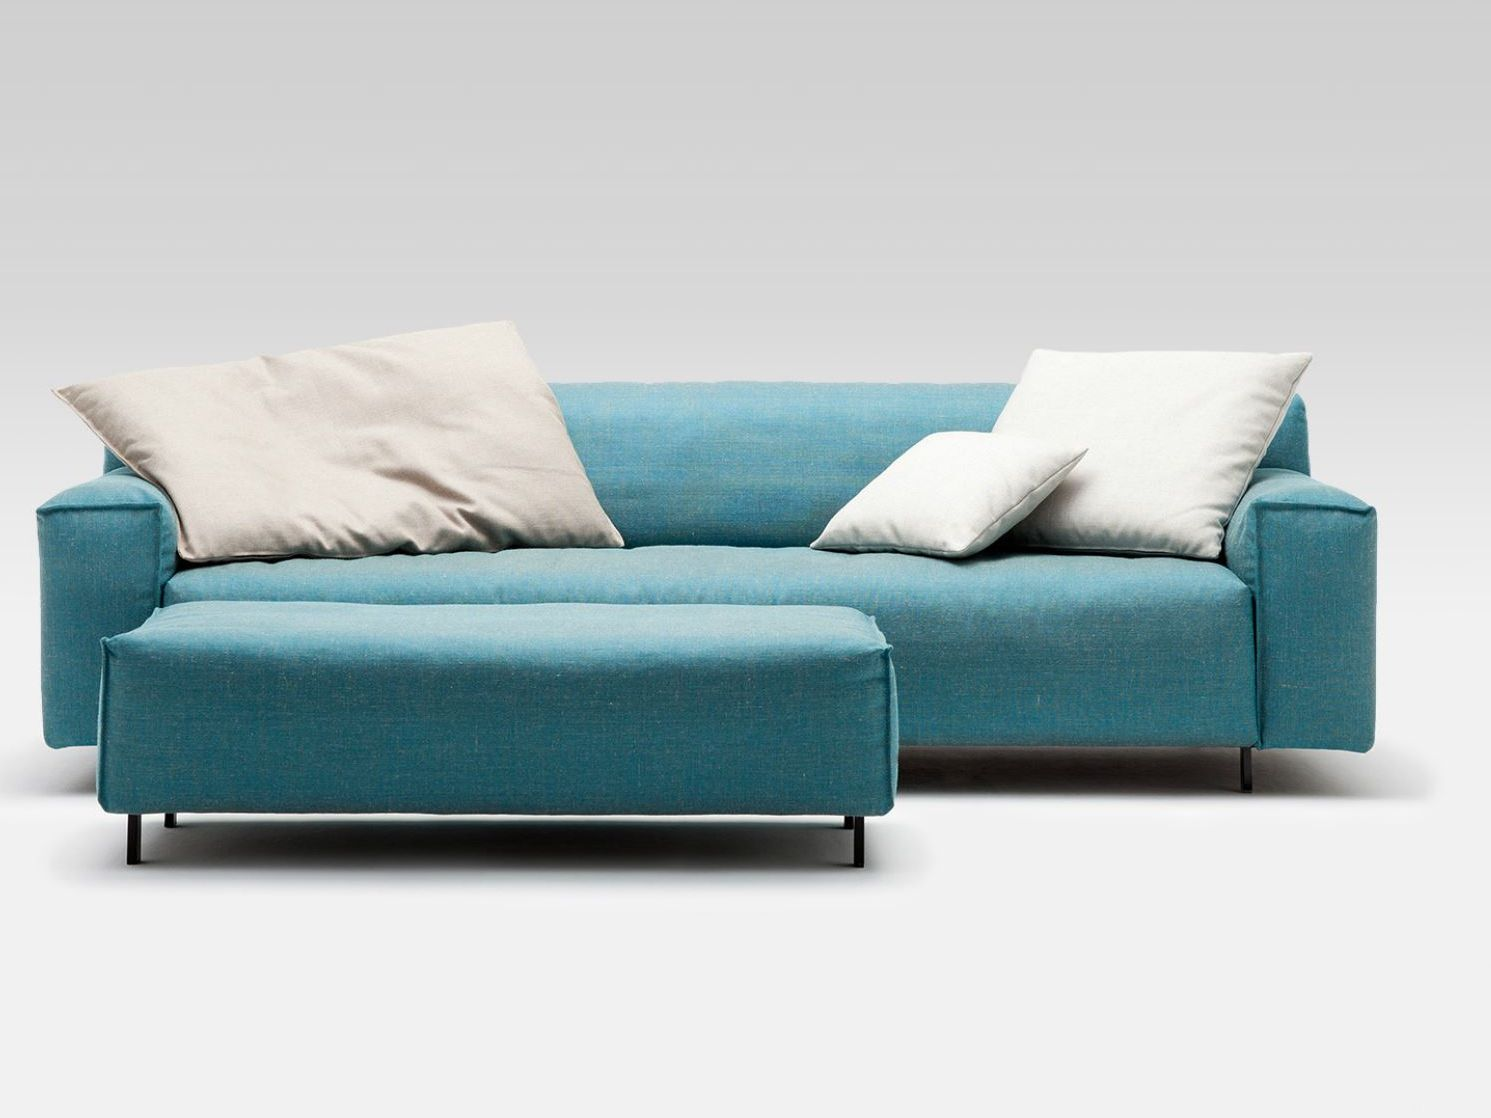 comfortable rolf benz sofa. Comfortable Rolf Benz Sofa In Blue With White Cushions .